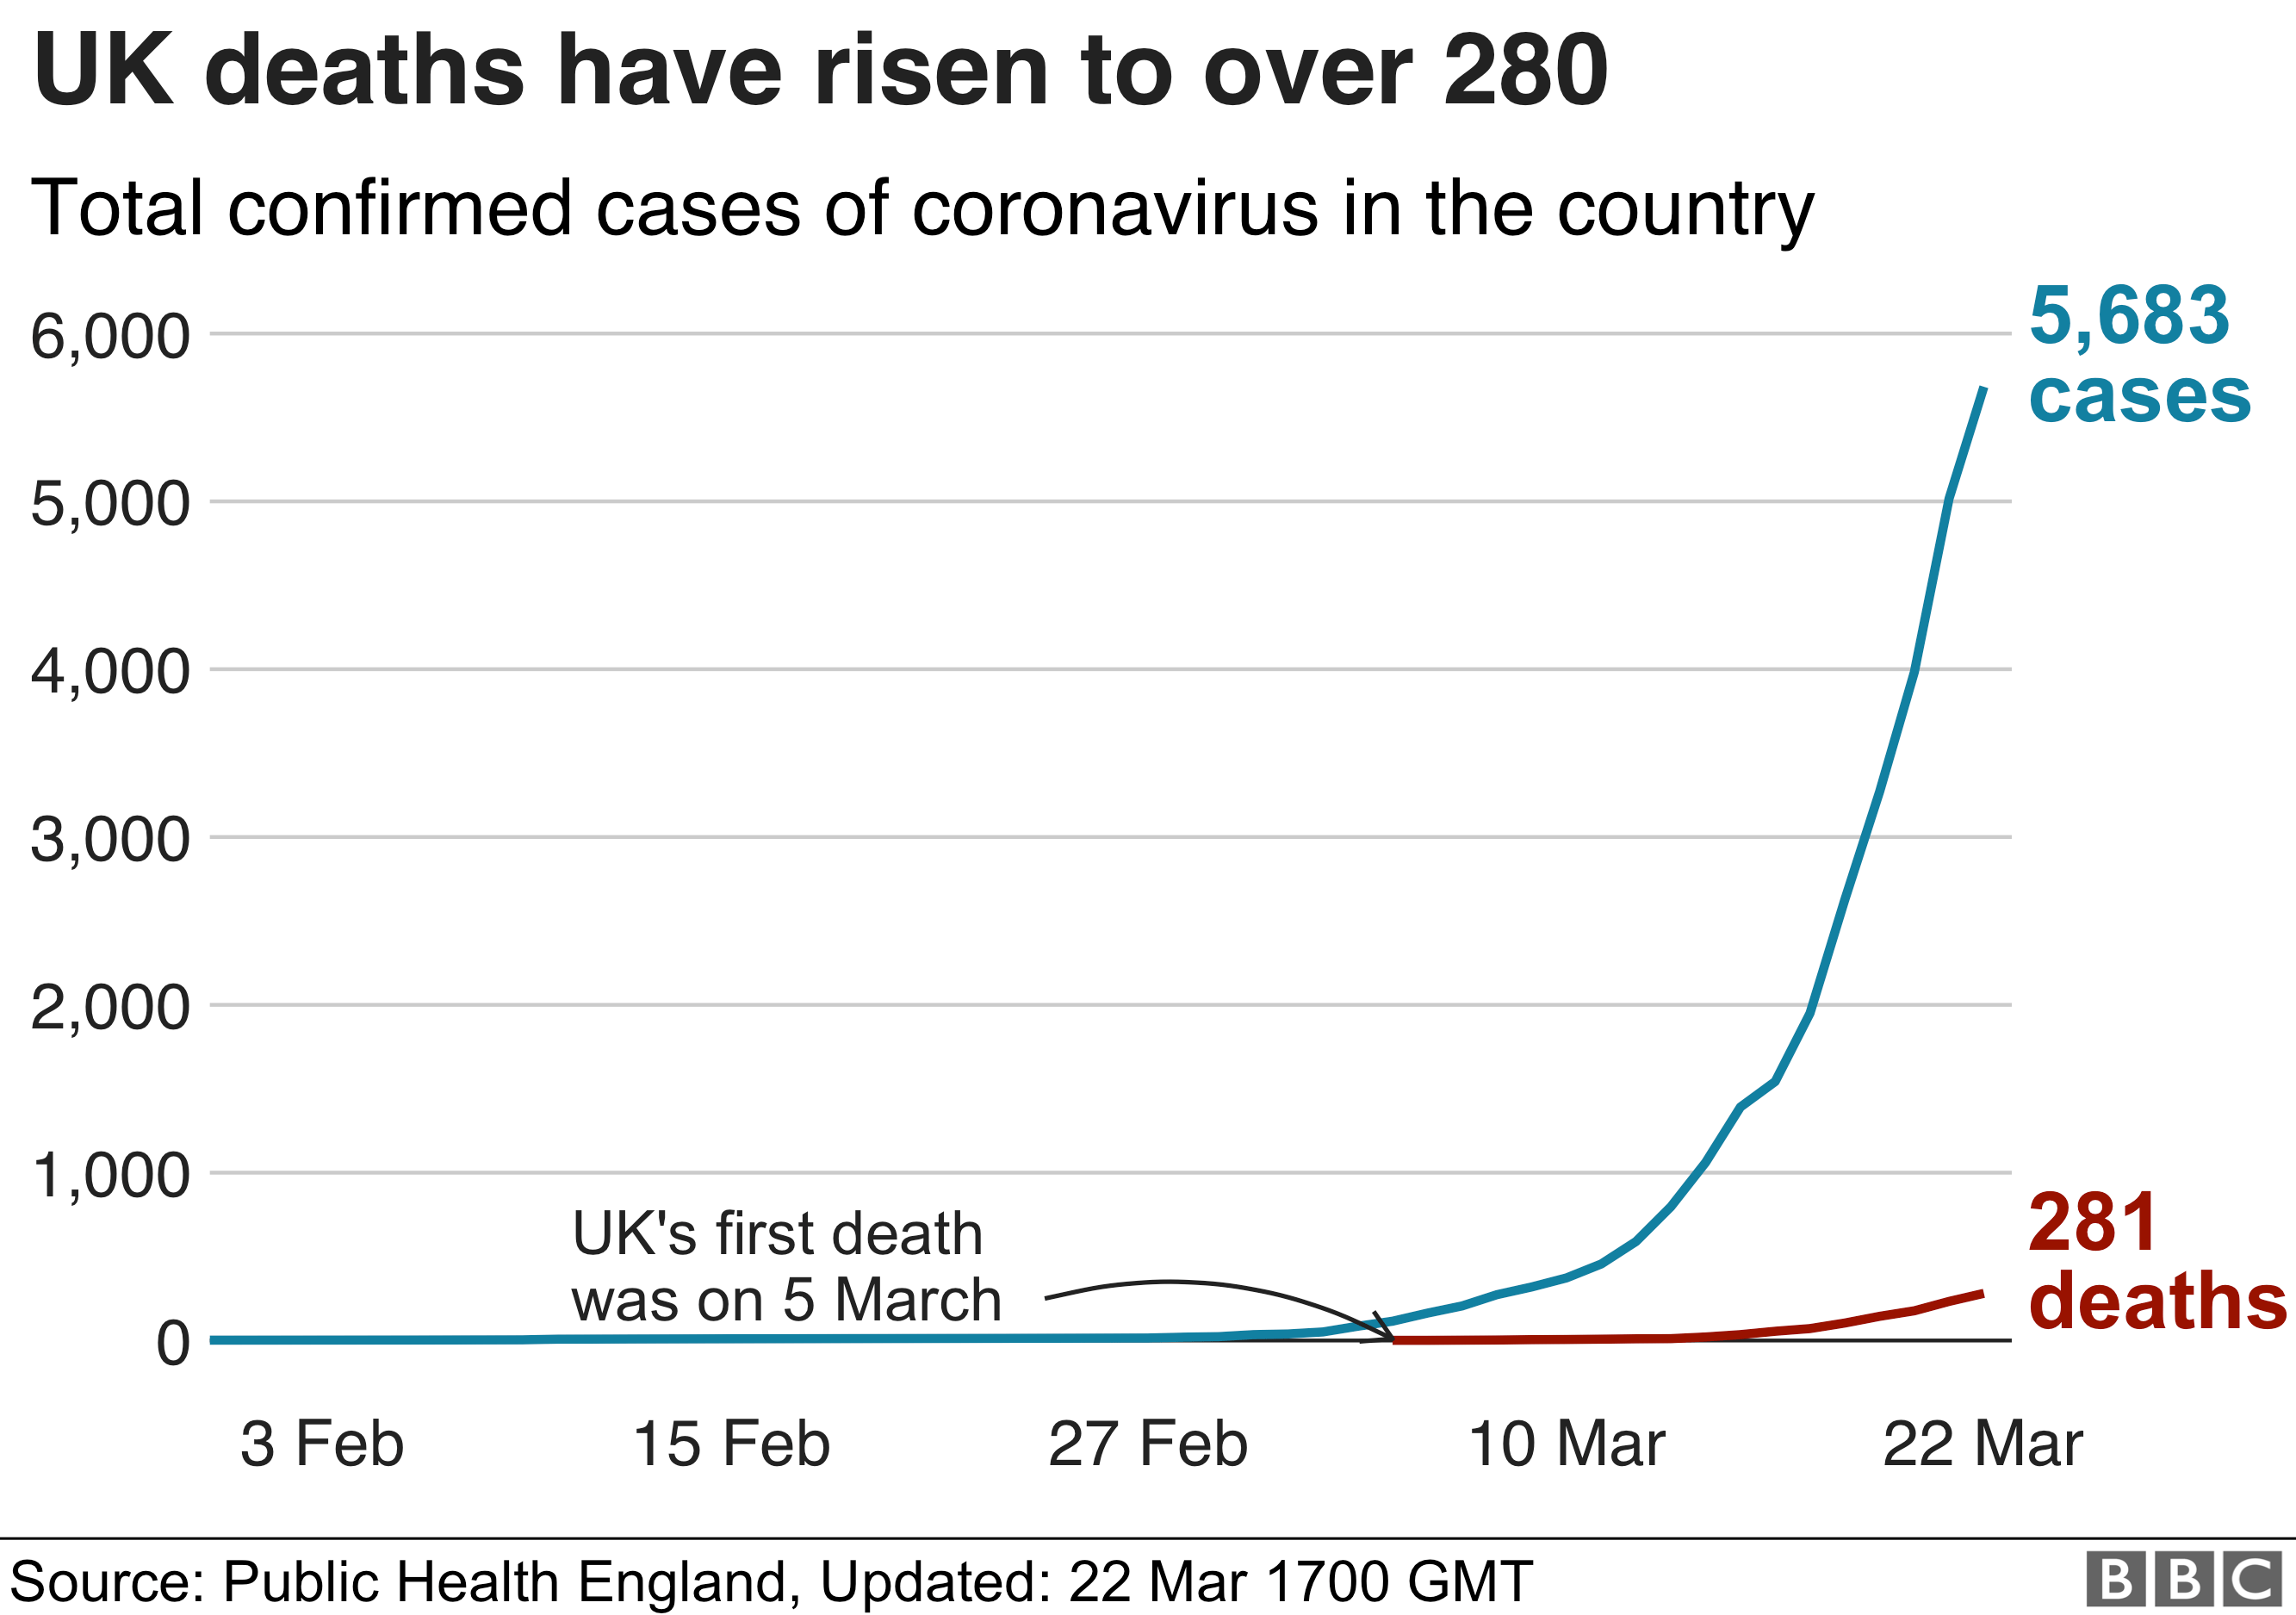 Line chart showing deaths and cases in UK